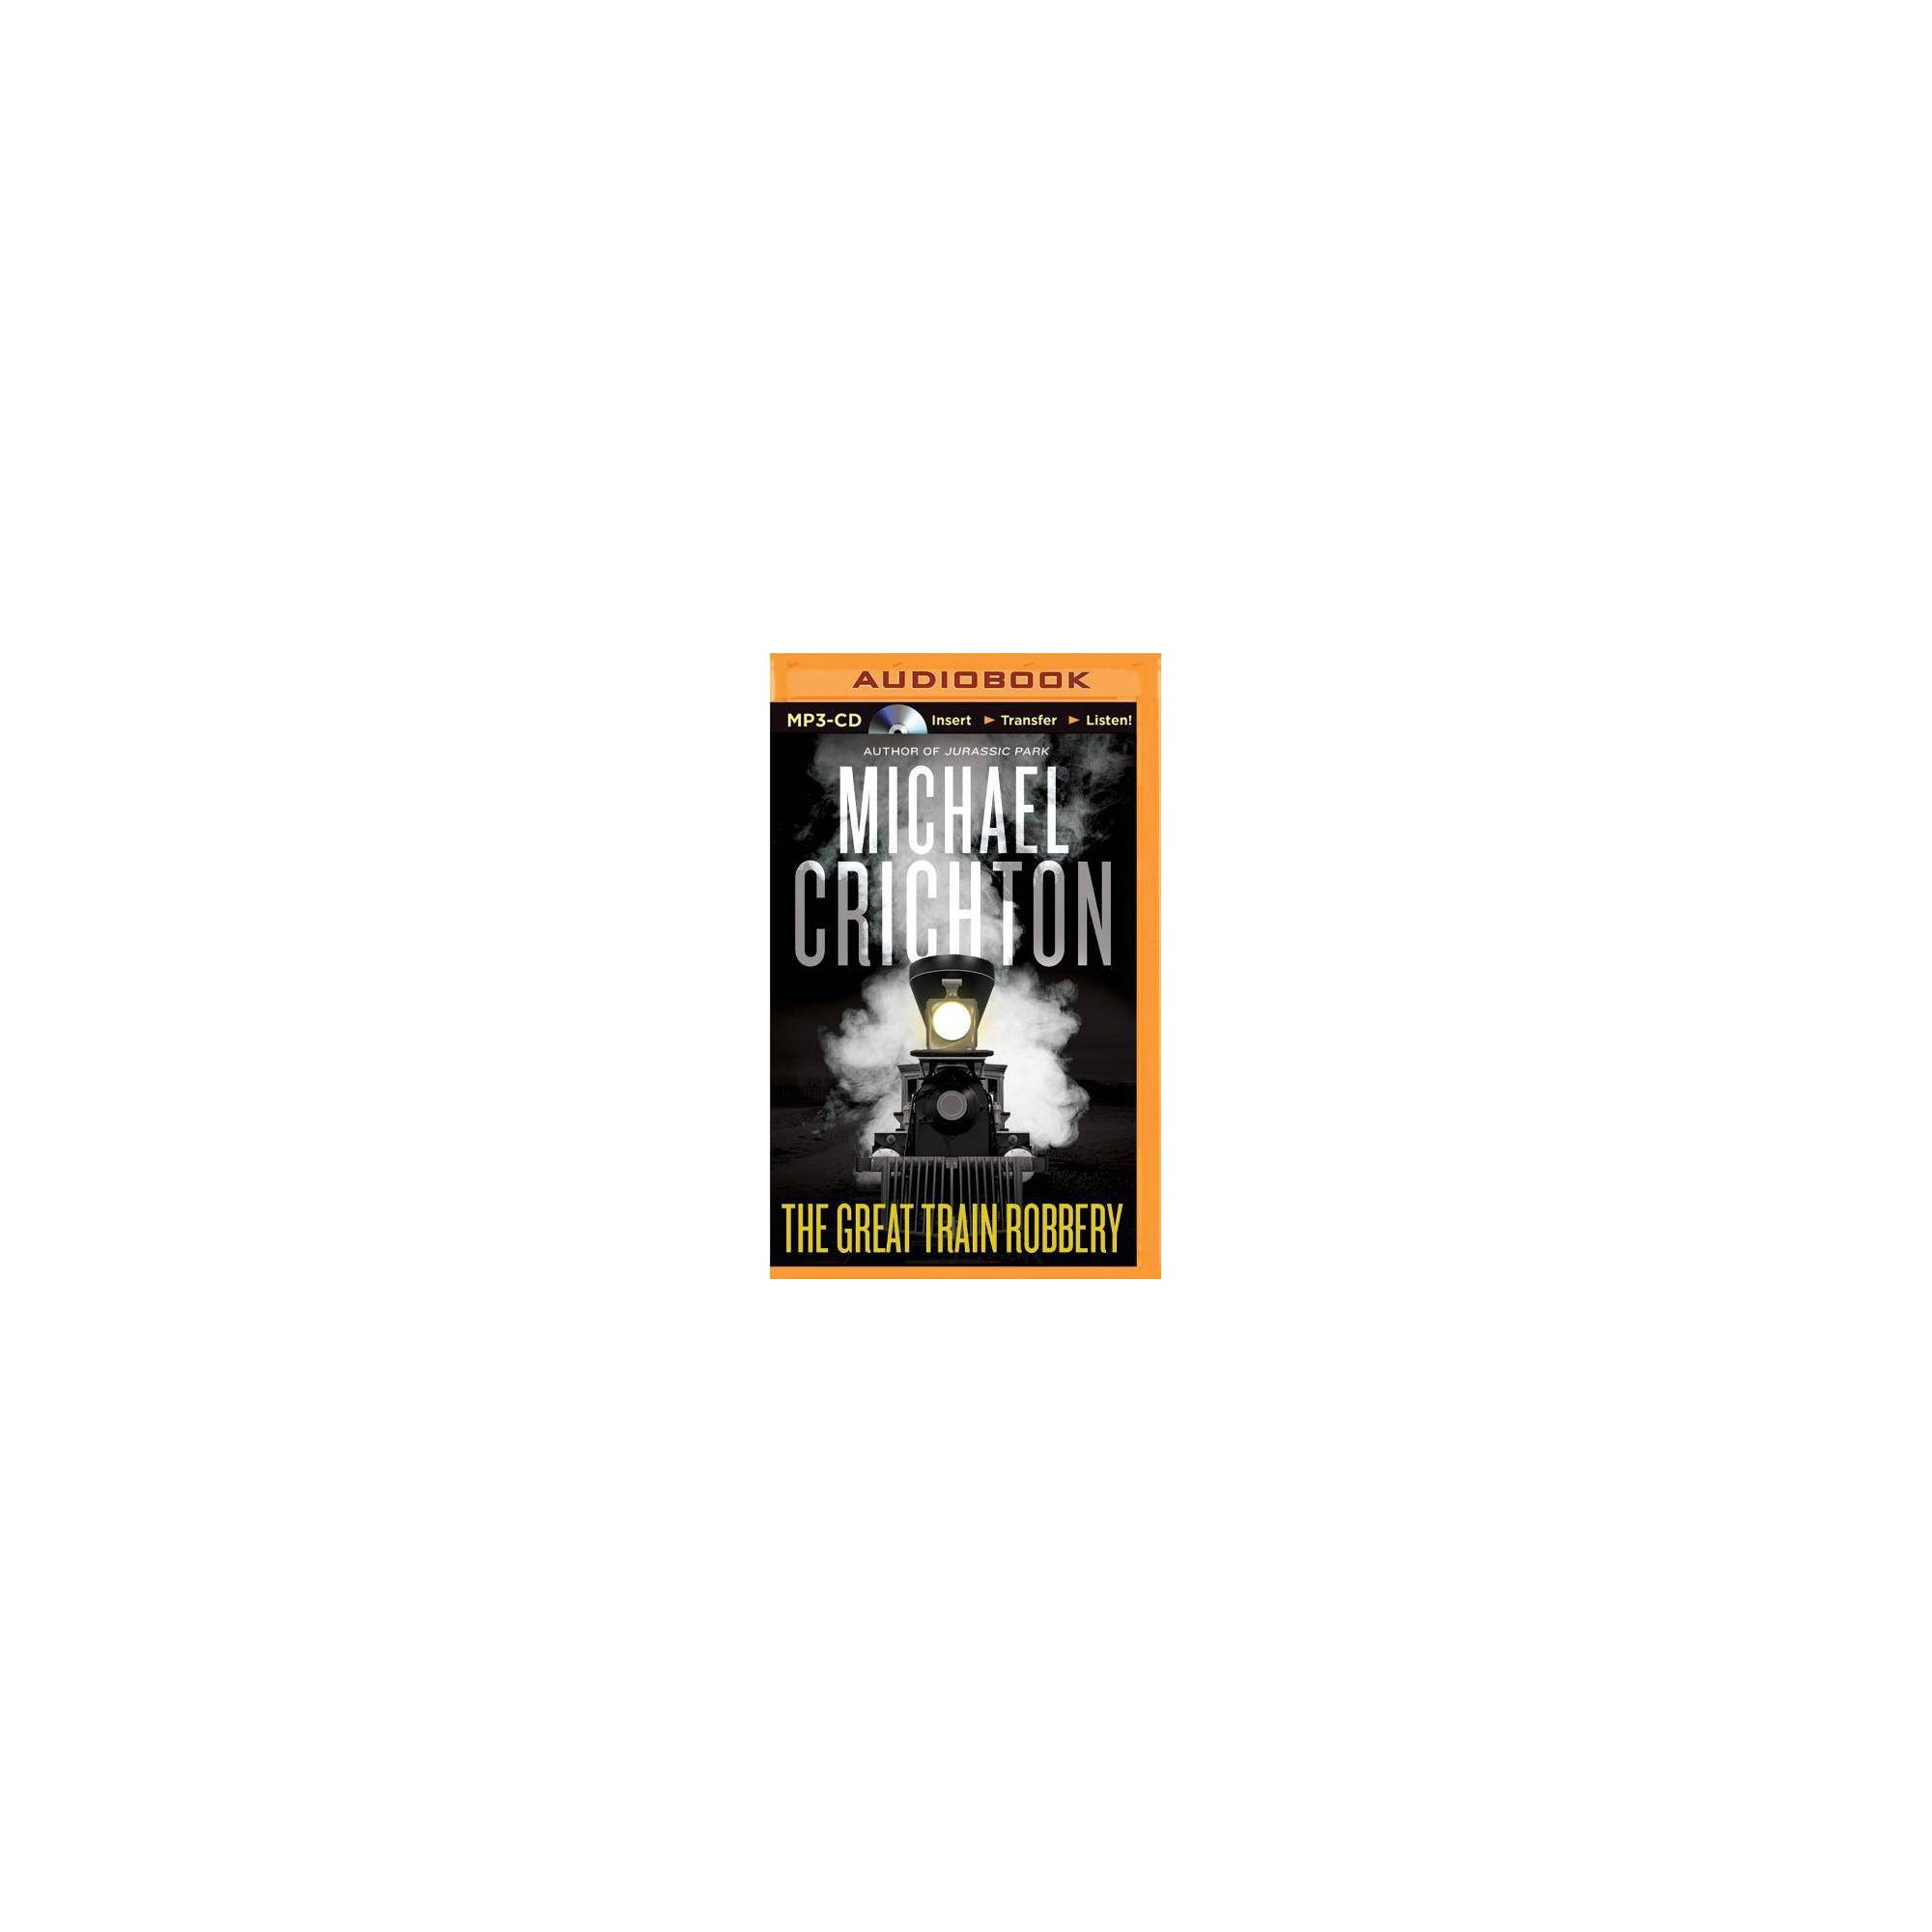 The Great Train Robbery - by Michael Crichton (AudioCD)